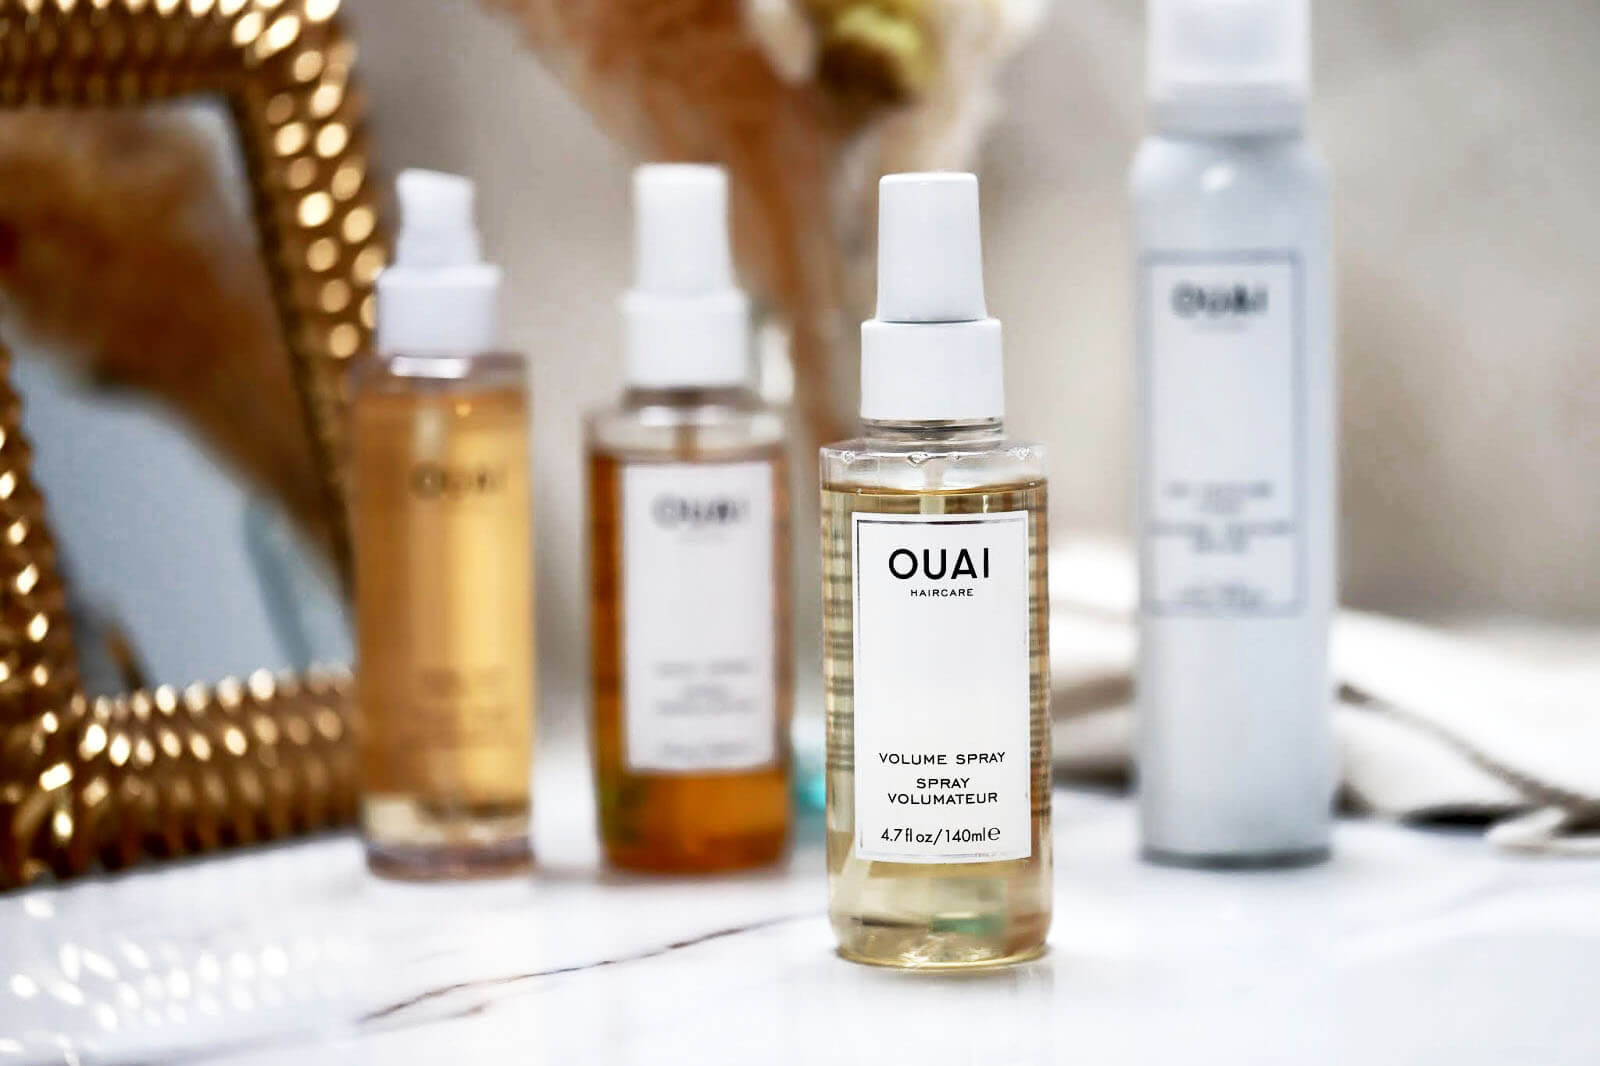 Ouai Spray Volume